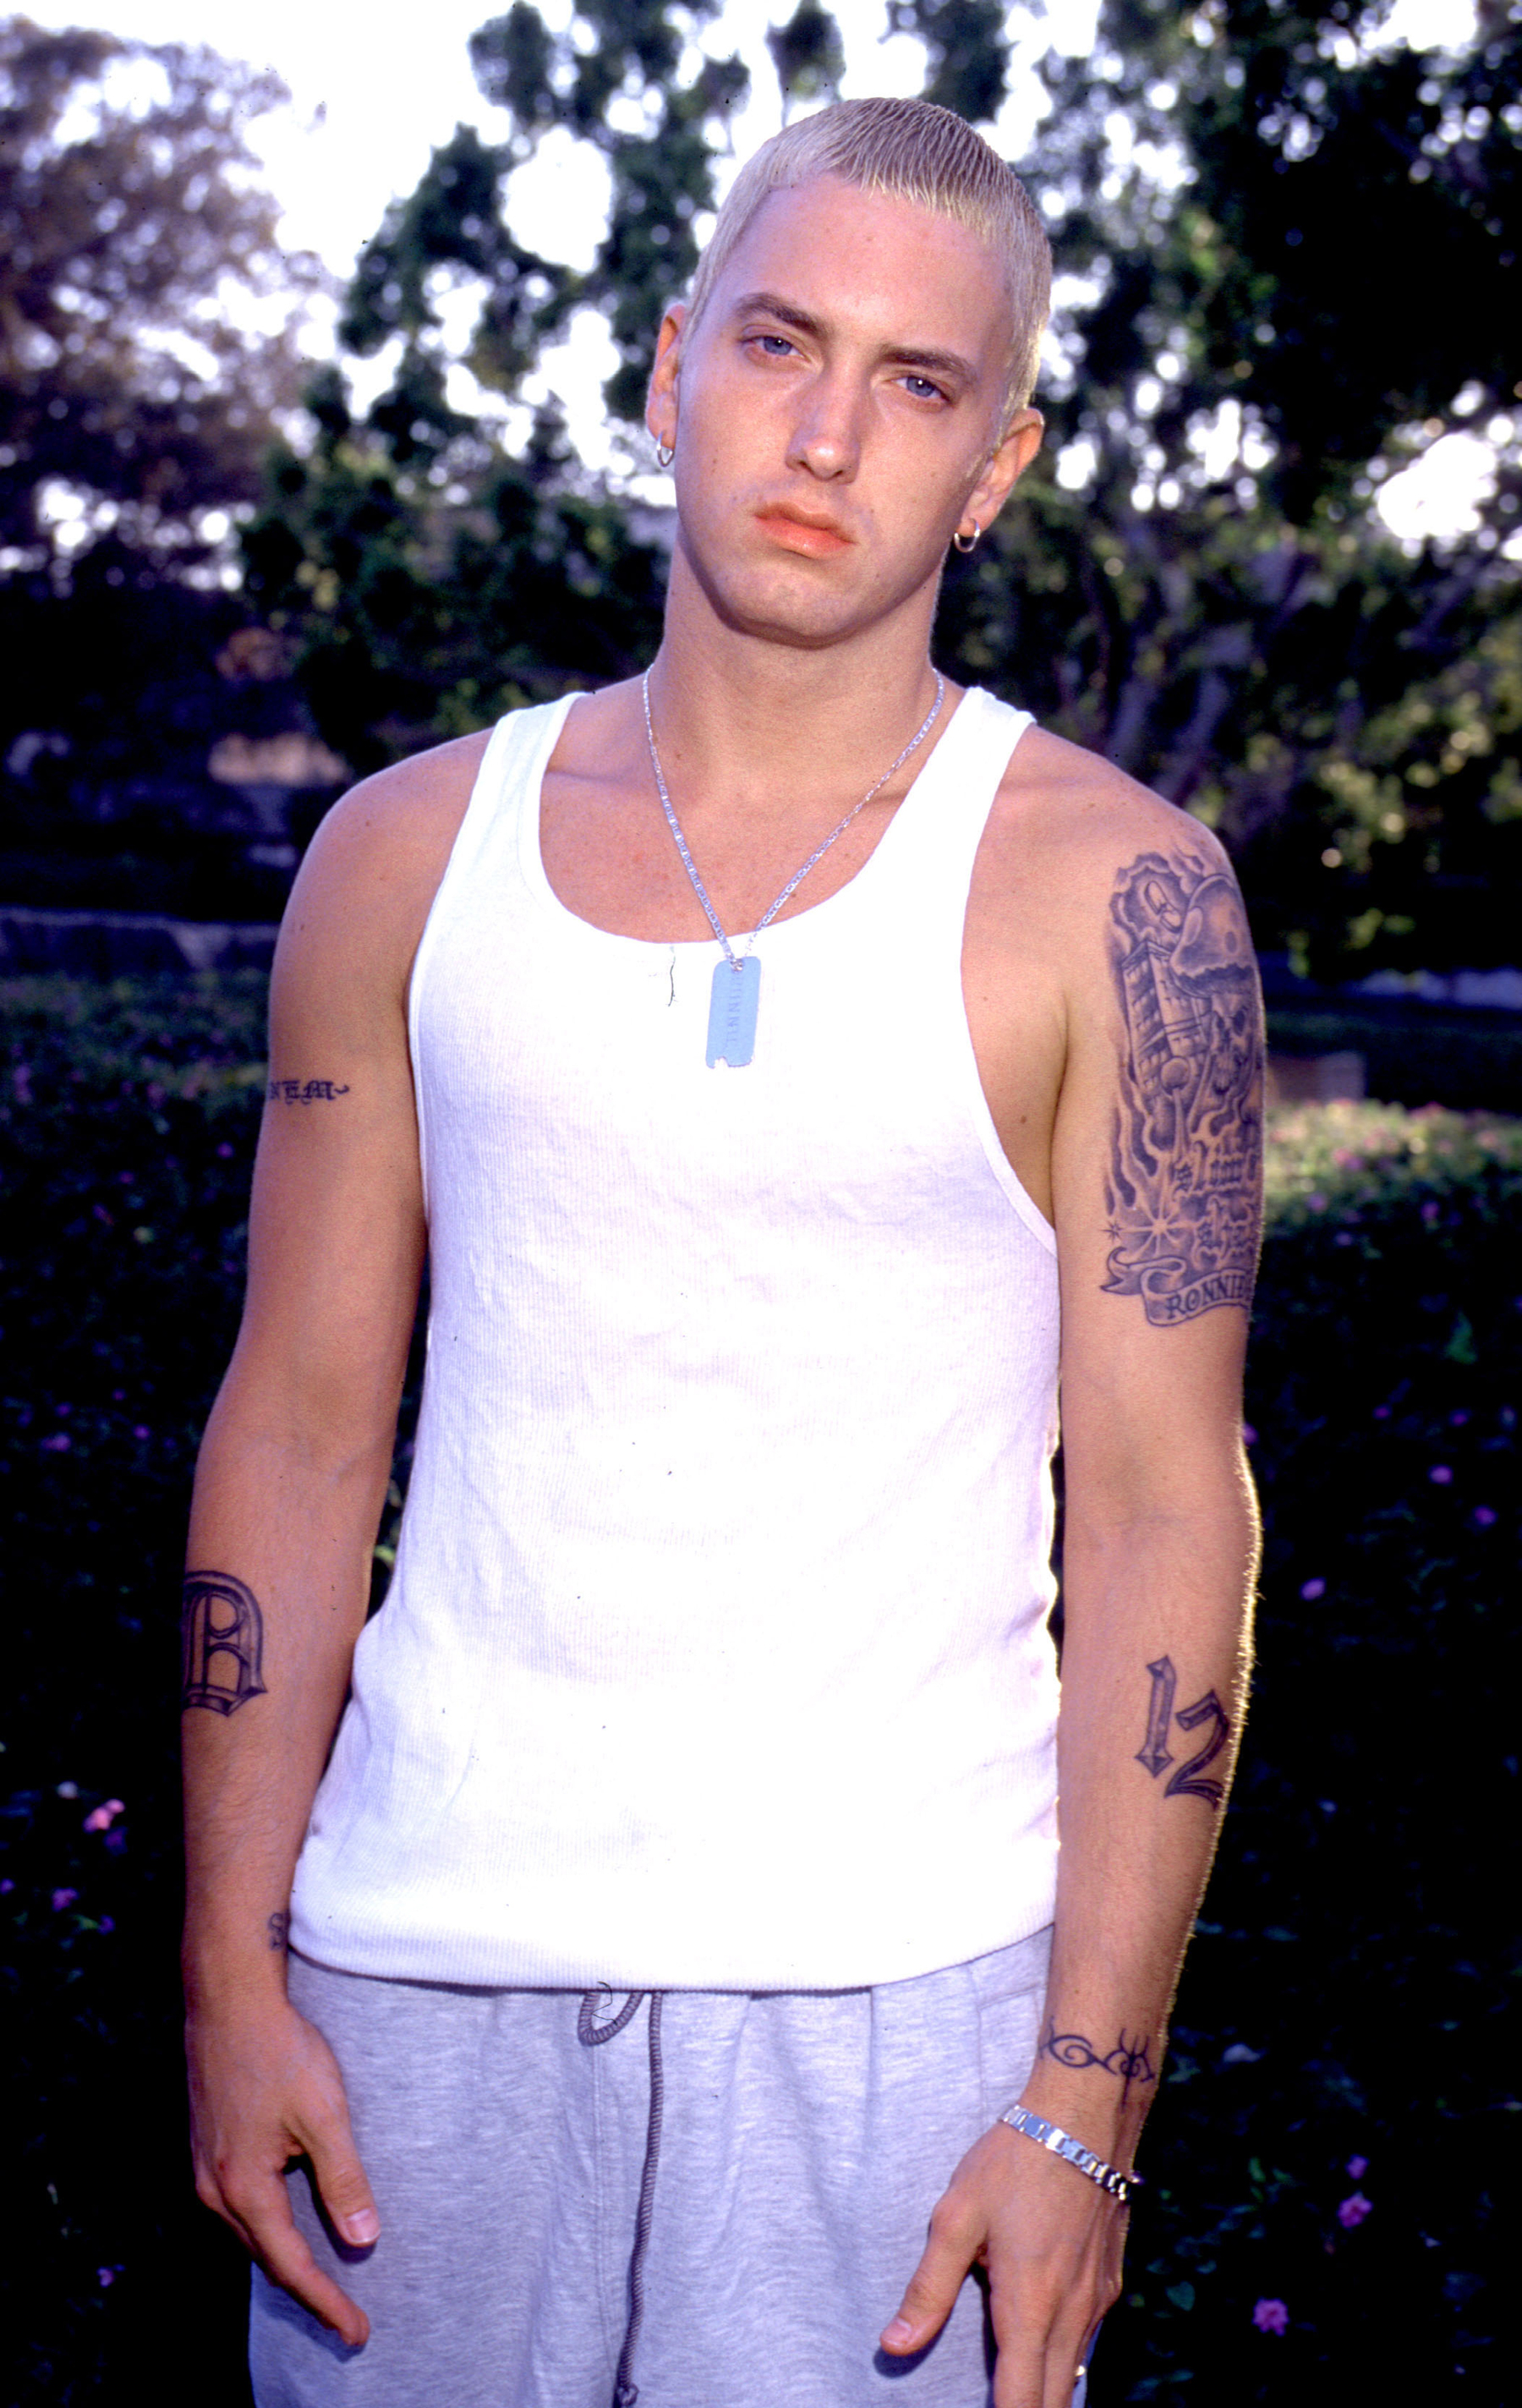 11 Revealing Moments From Eminem's Early Days